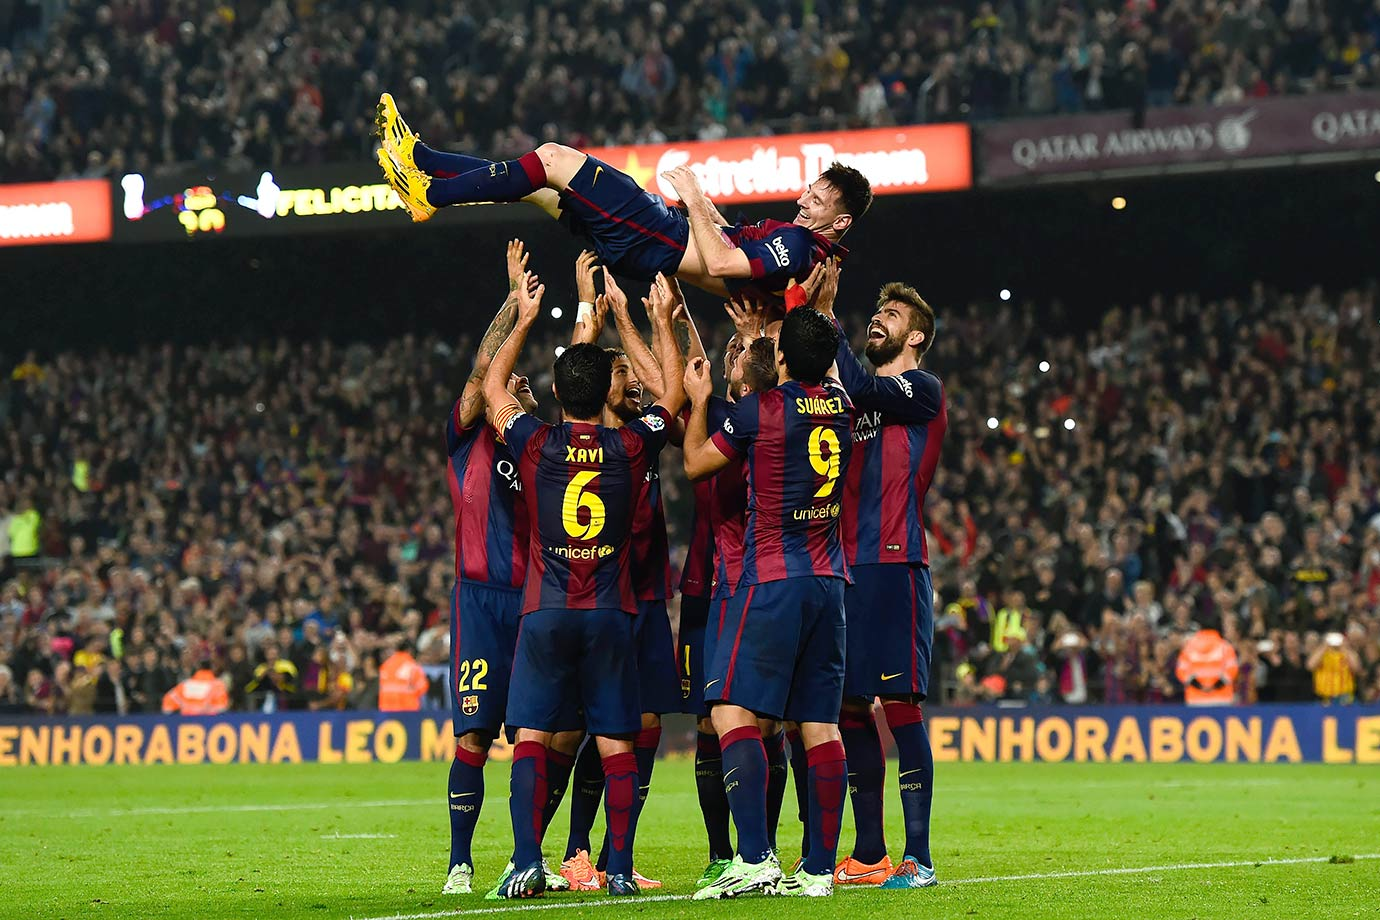 Barcelona's Lionel Messi celebrates with teammates after scoring his team's fourth goal during the La Liga match against Sevilla FC on Nov. 22, 2014 at Camp Nou stadium in Barcelona, Spain.